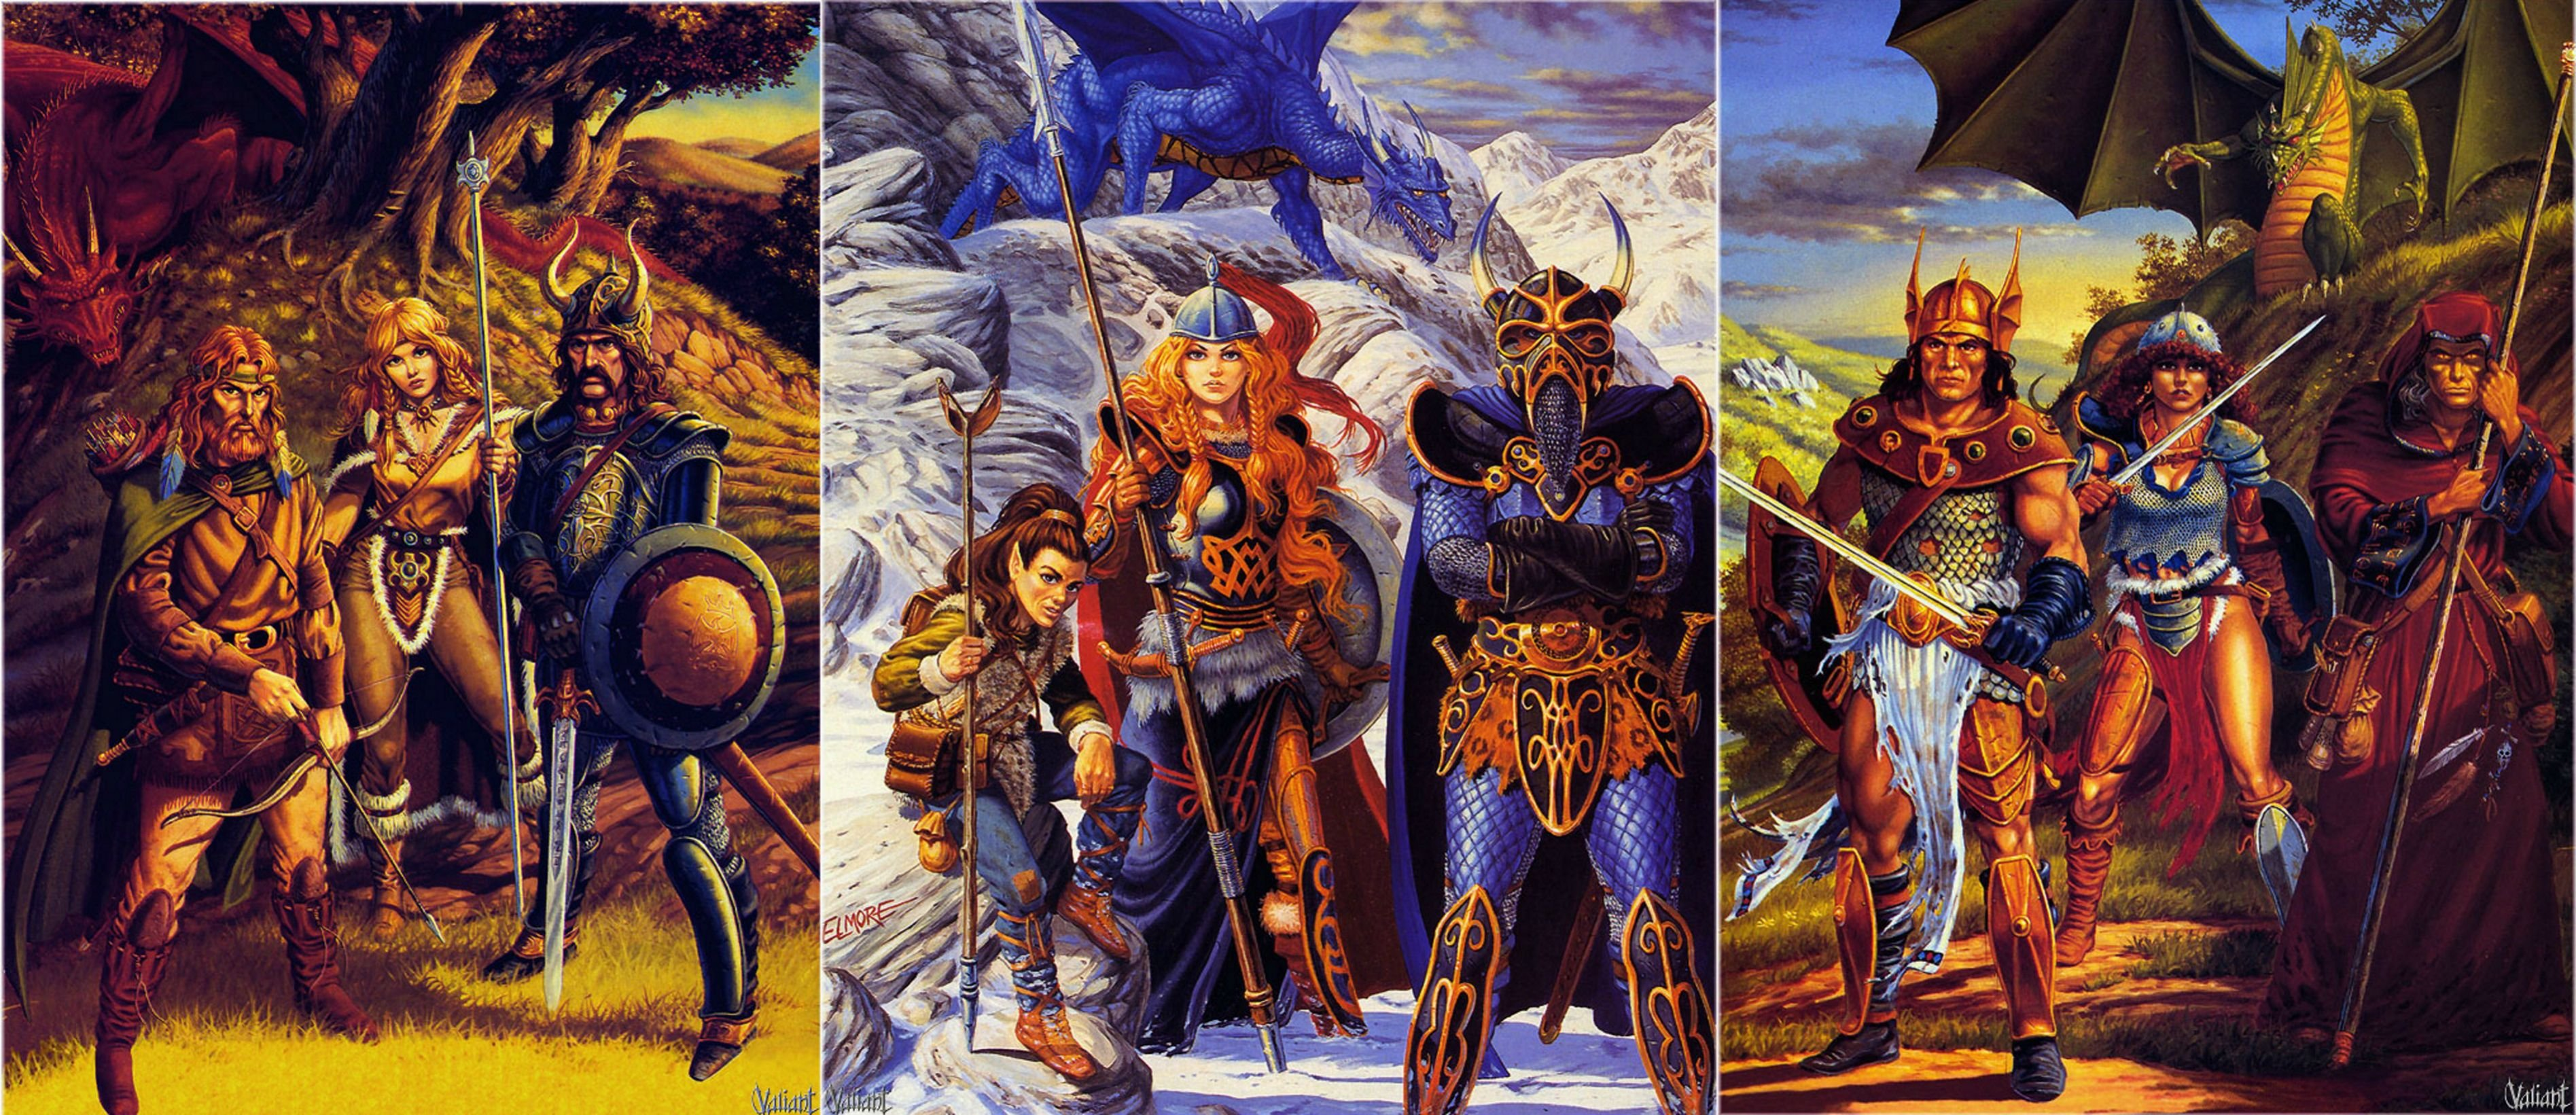 dragonlance-chronicles-trilogy-covers-tsr--larry-elmore-wallpaper.jpg